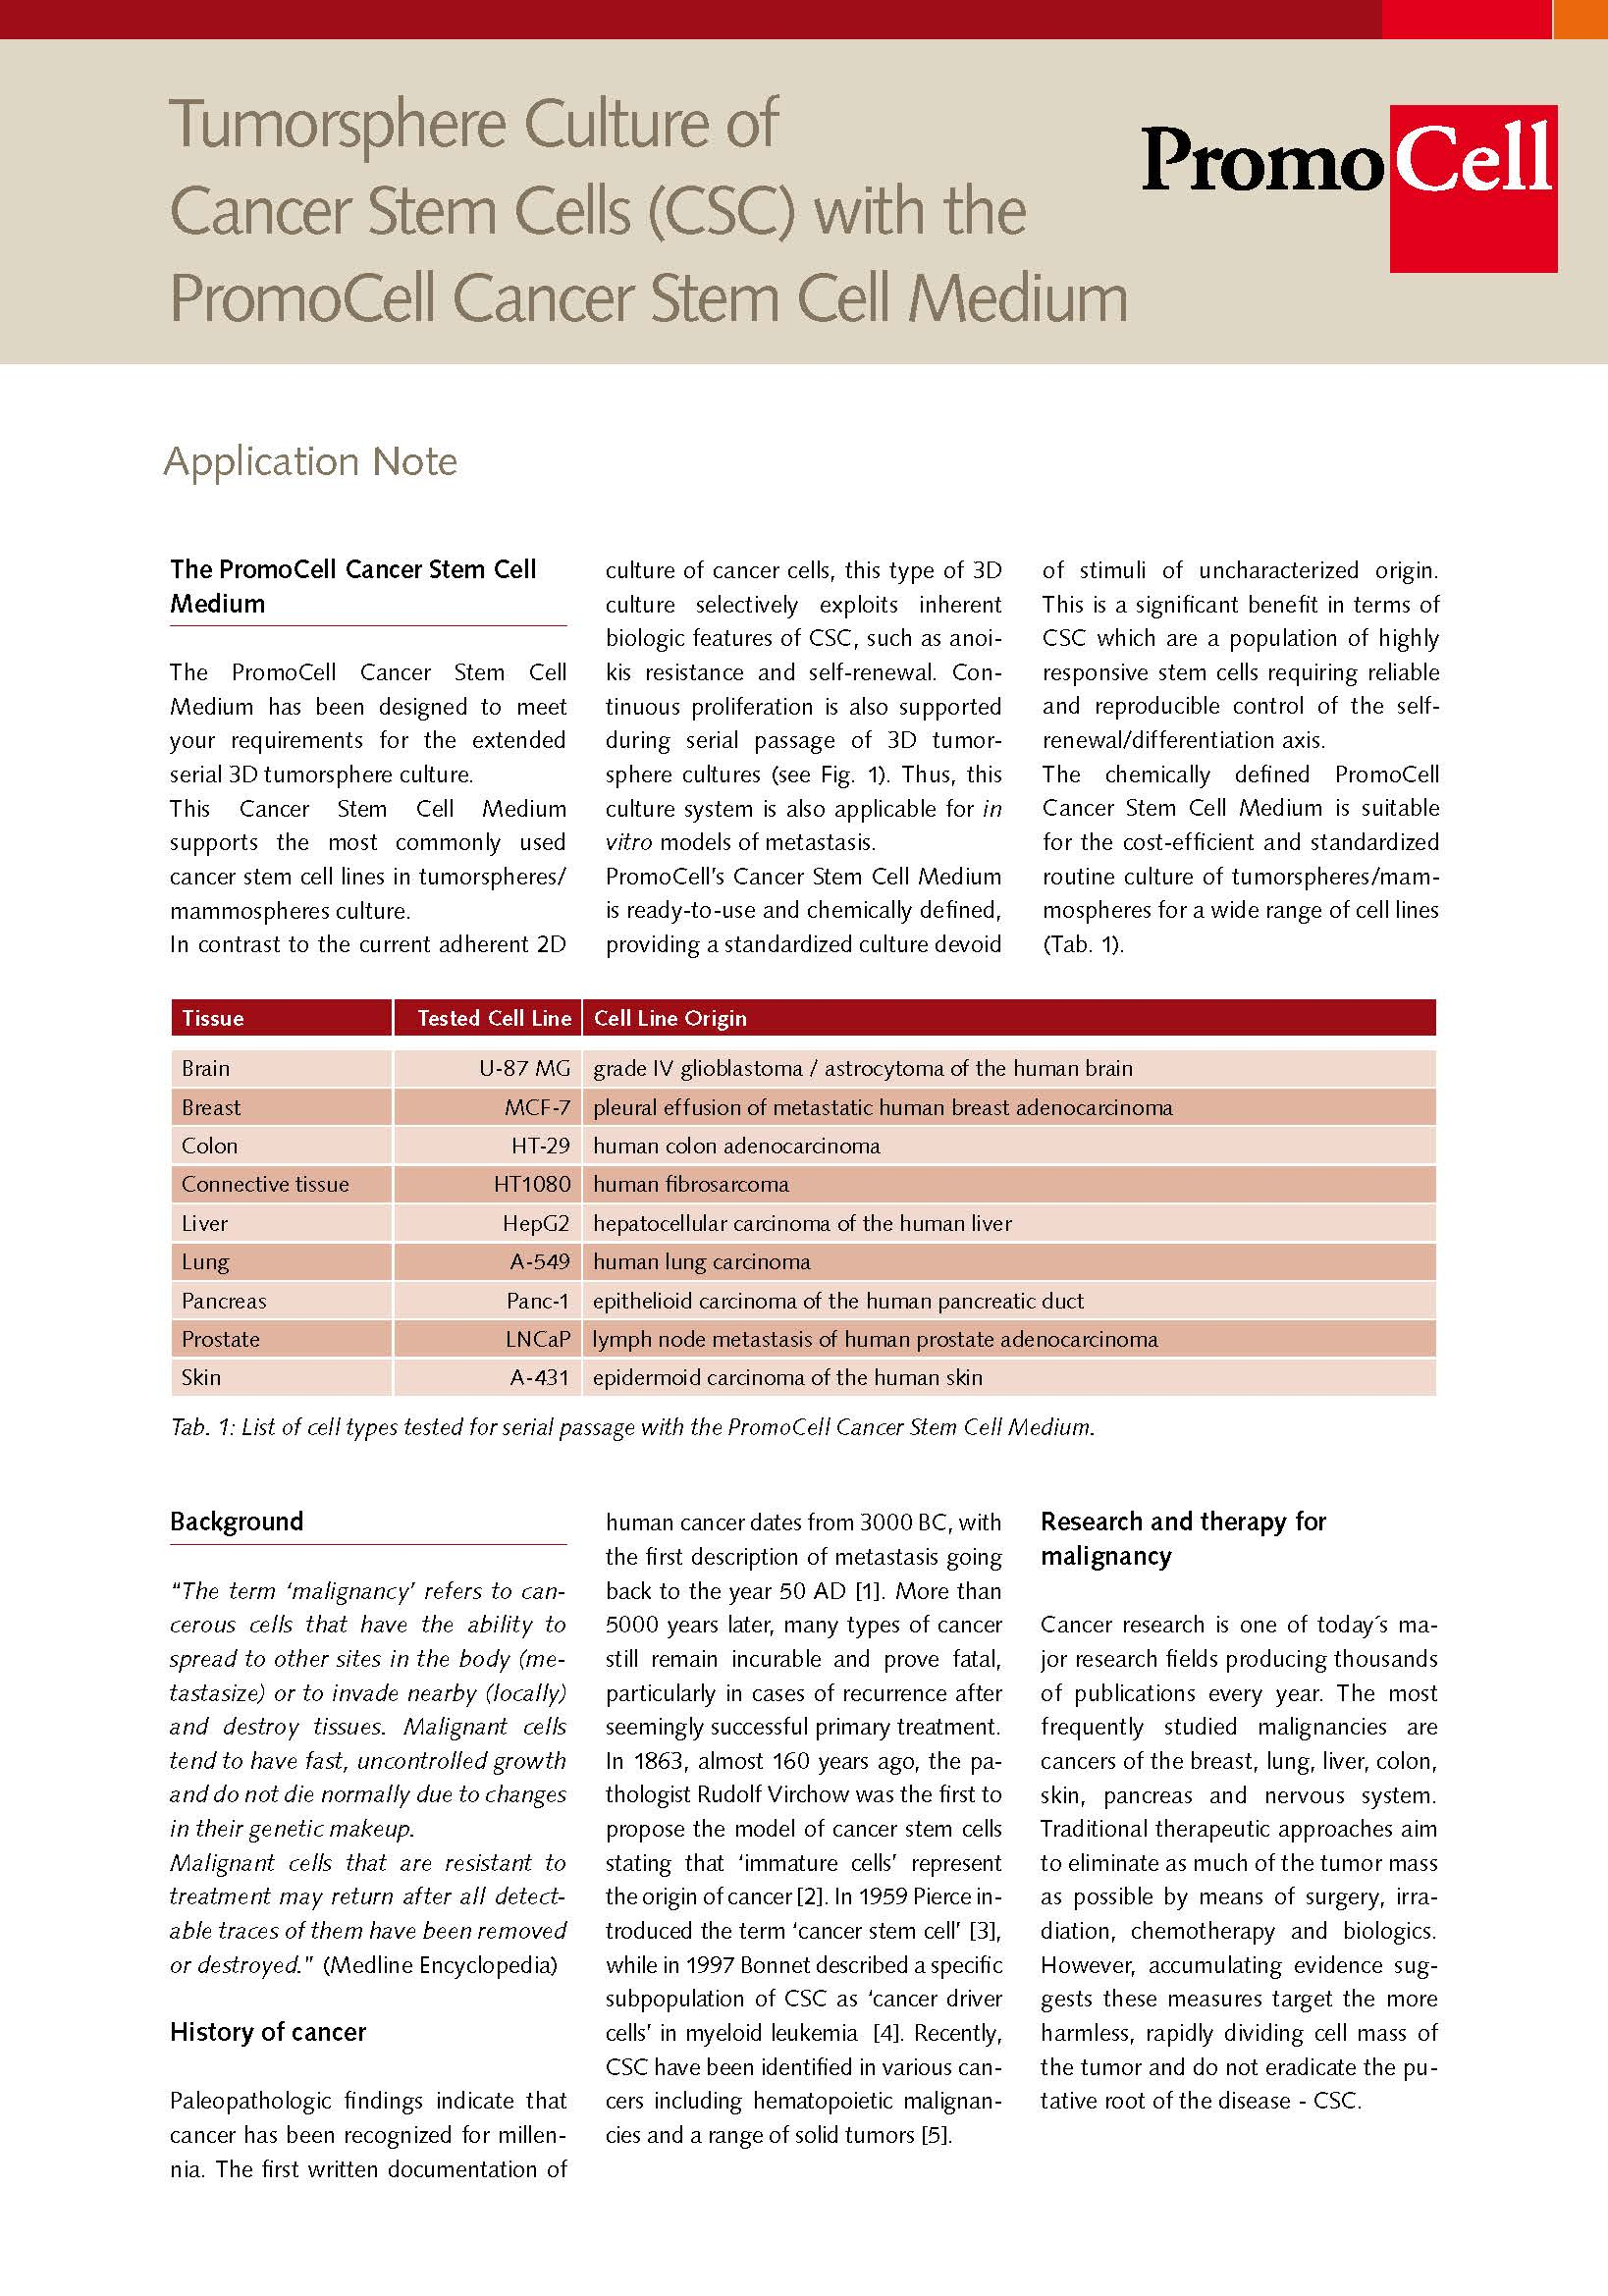 cancer stem cell medium application note